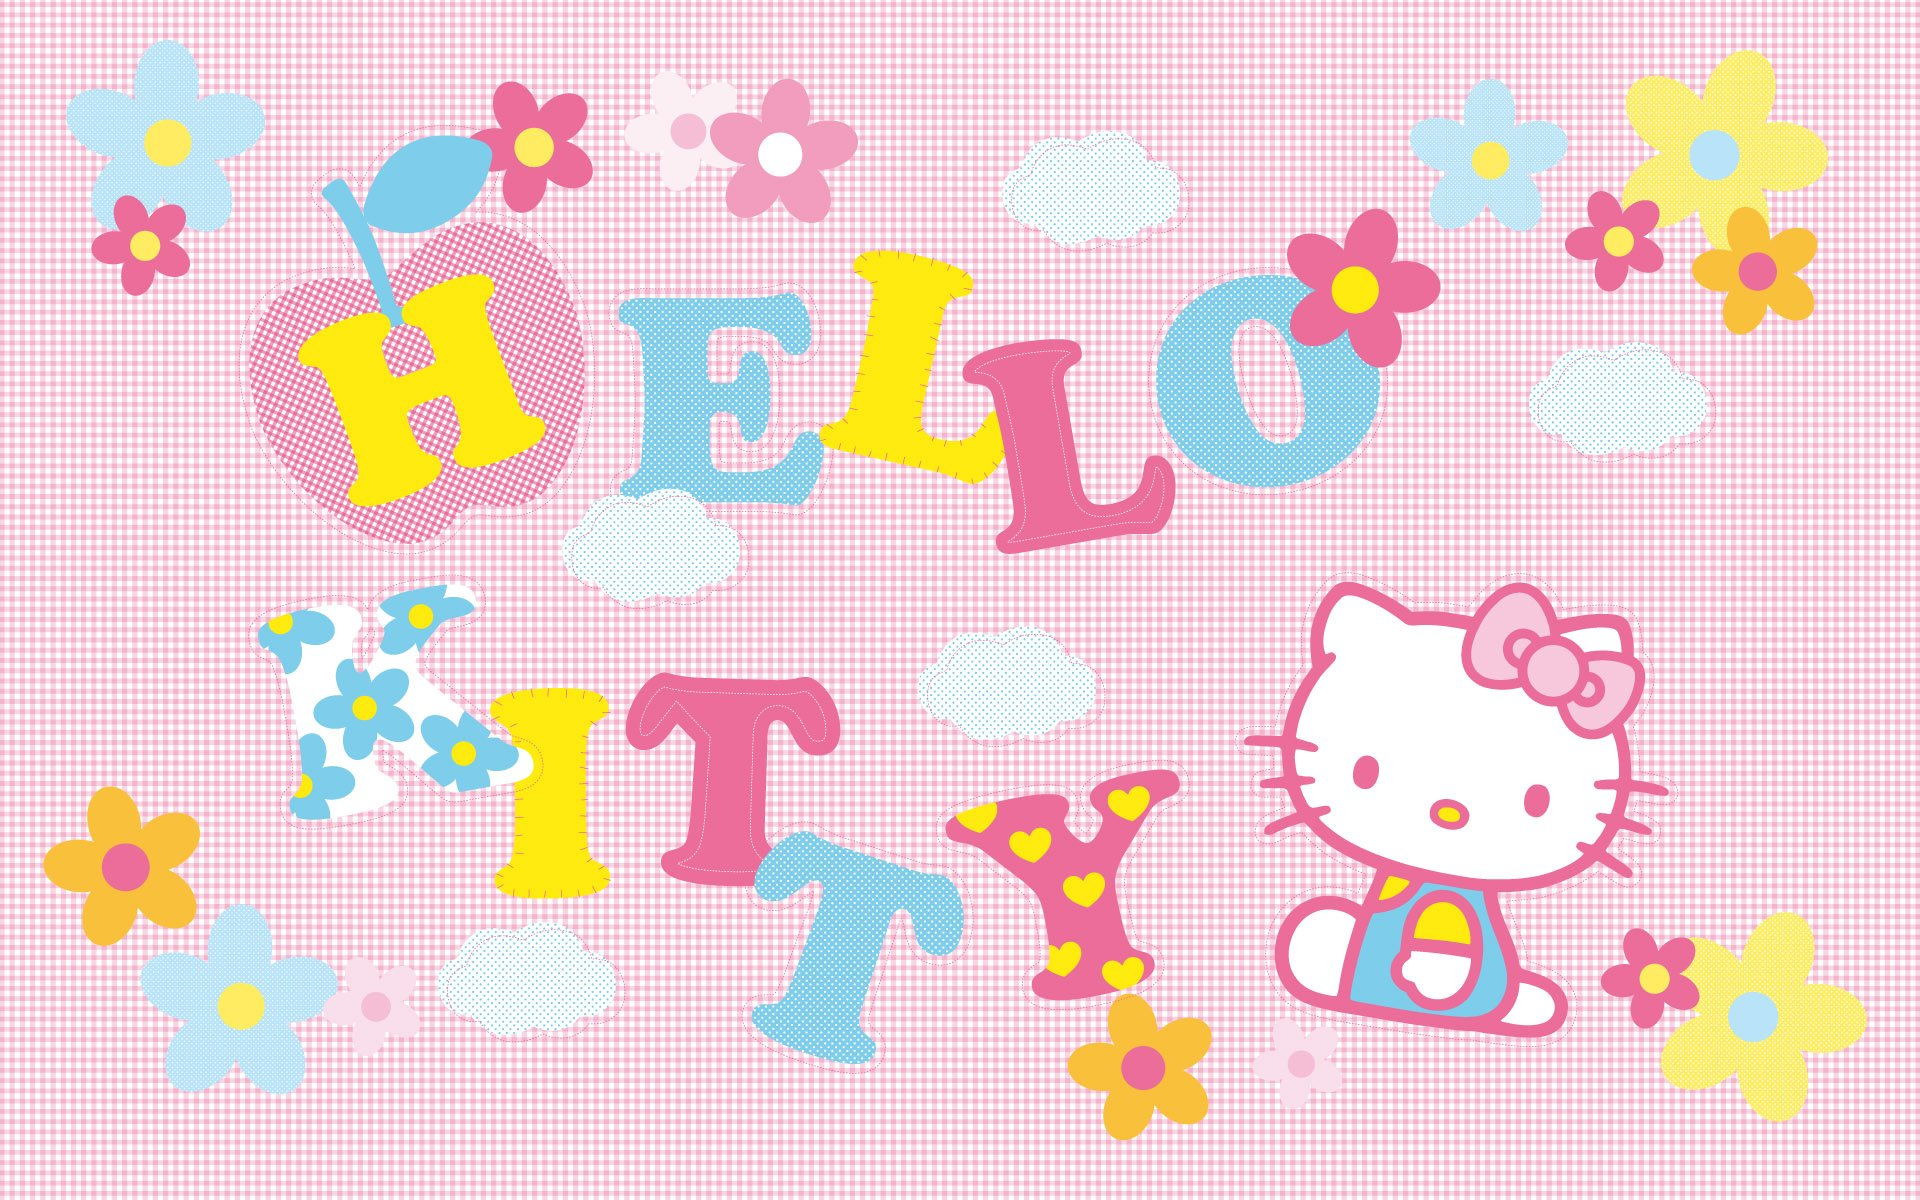 Must see Wallpaper Hello Kitty Lenovo - thumb-1920-475406  Pic_648532.jpg